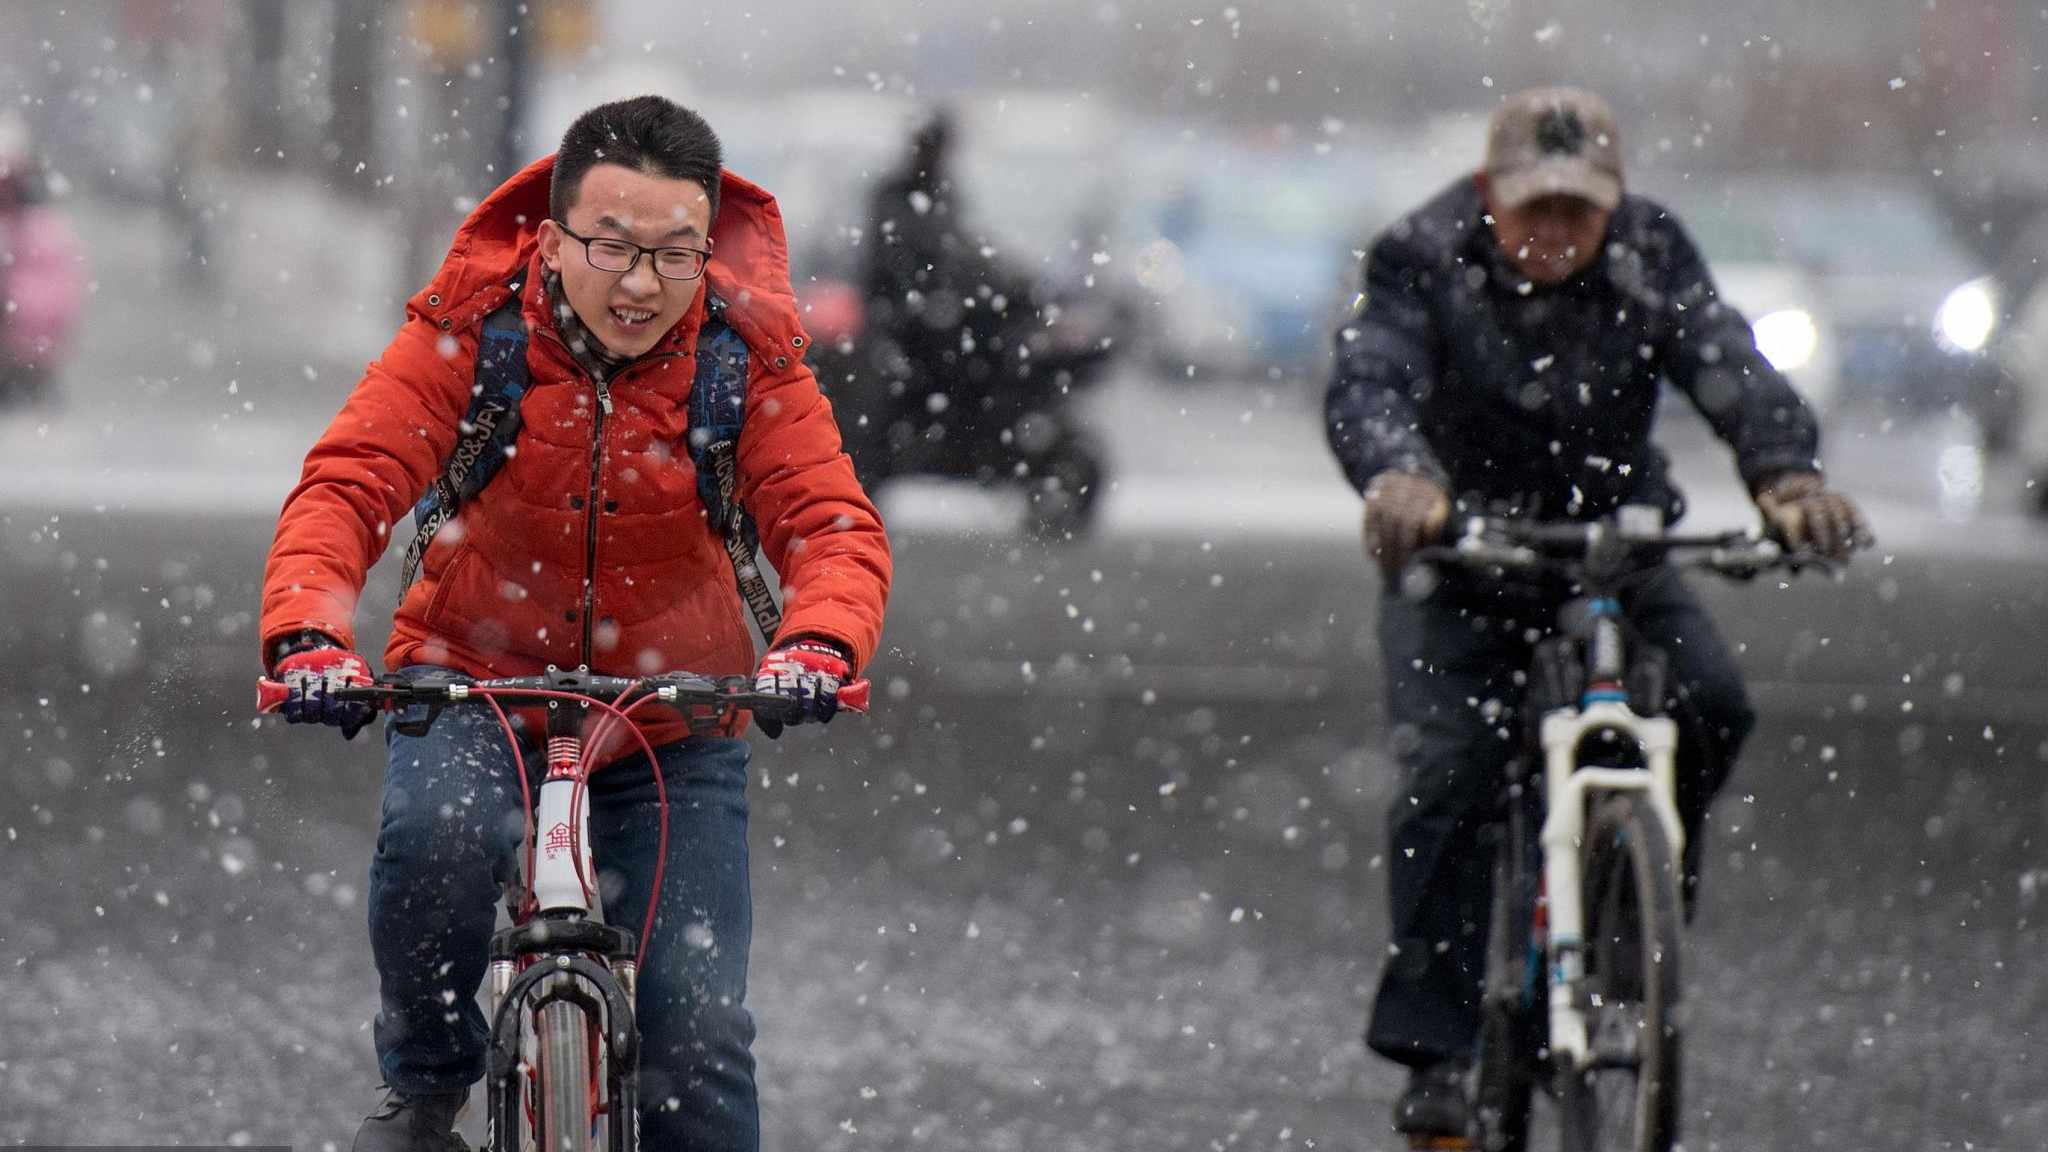 Winter is here! Cold wave hits most parts of China